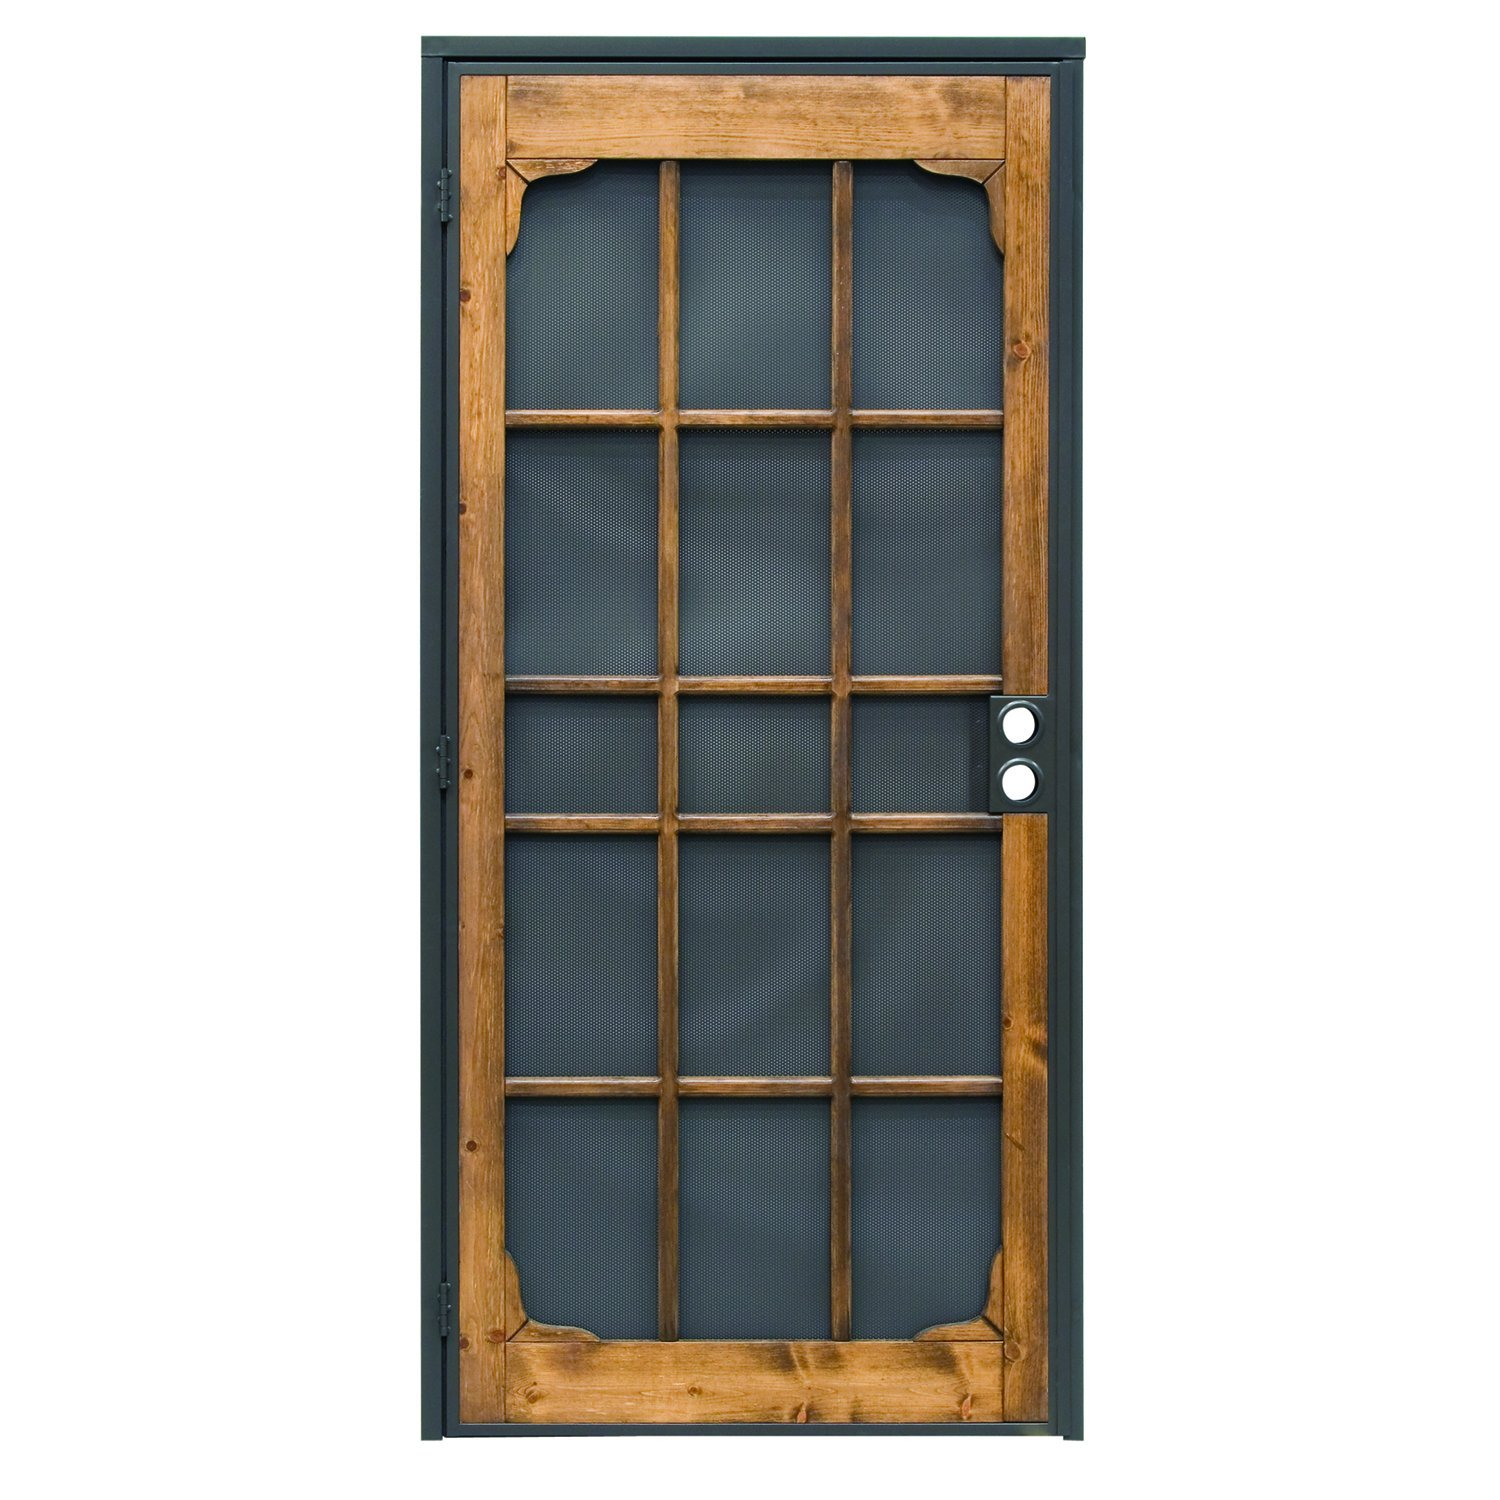 Prime-Line Products 3809BZ3068-I-WF Woodguard Steel Security Door, 36 in. x 80 in., Steel & Wood Construction, Non-Handed, Bronze by Prime-Line Products